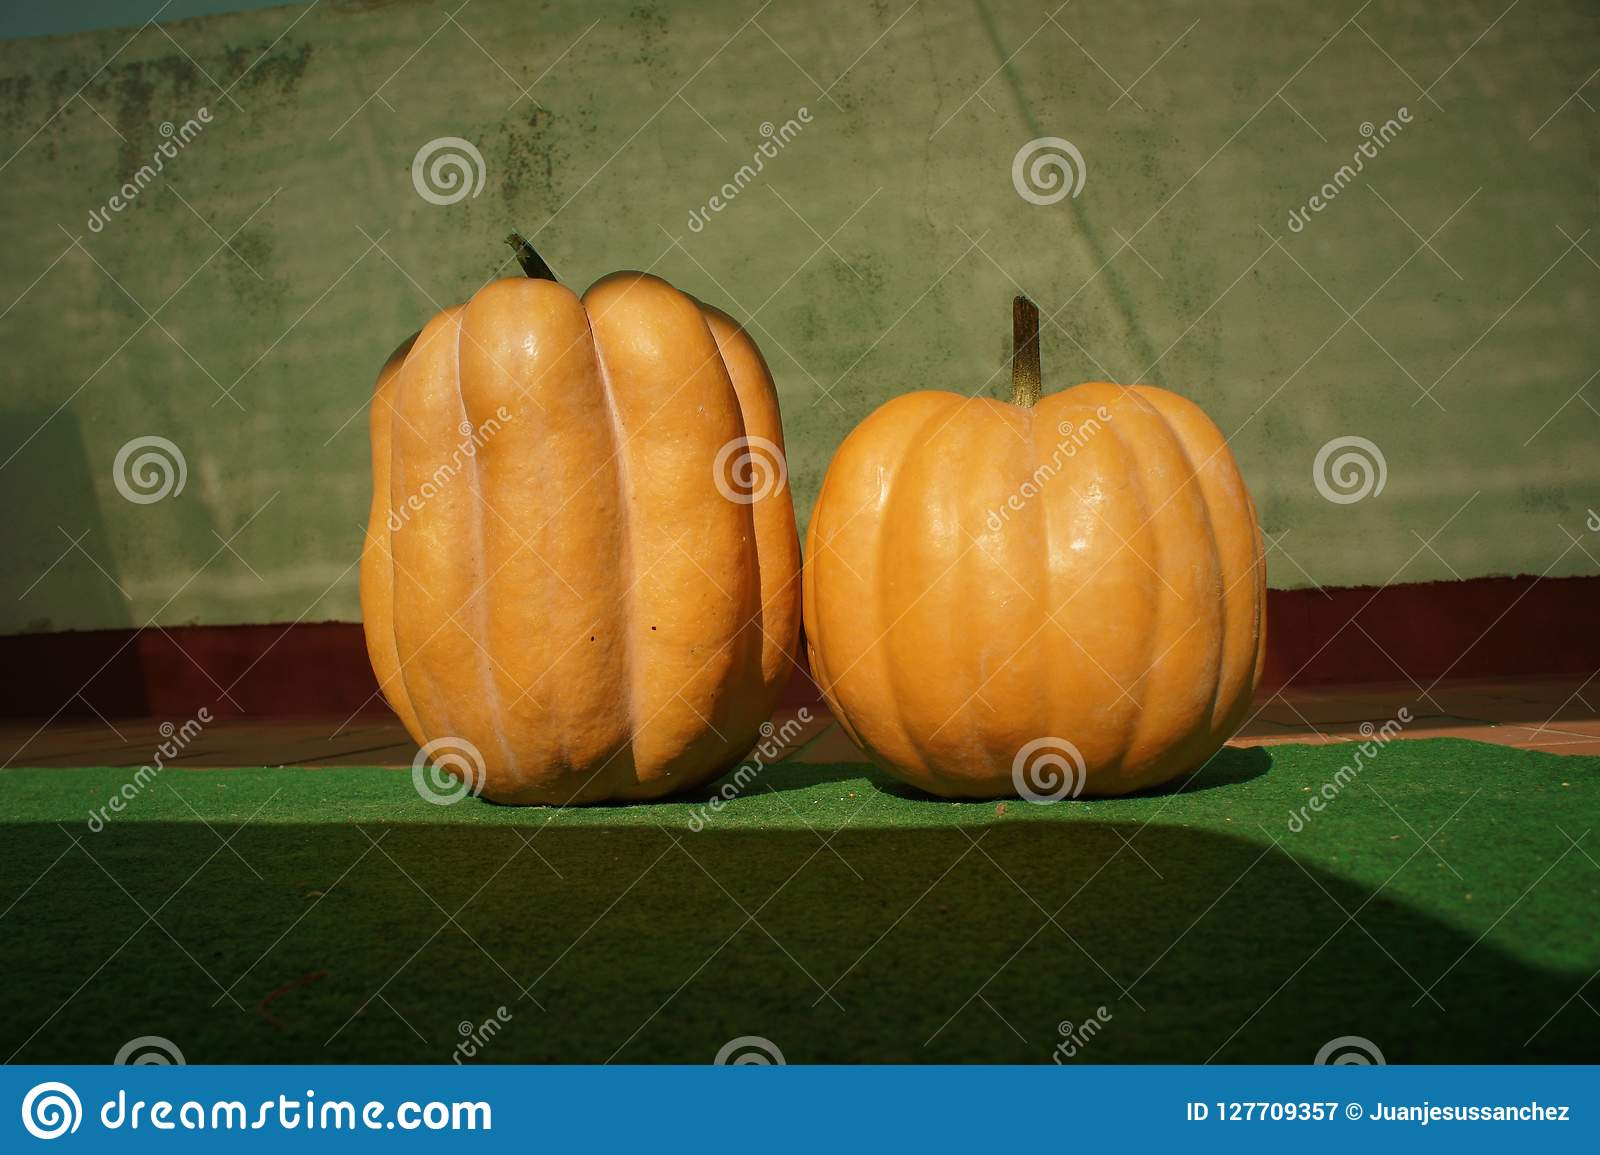 Autumn Season Pumpkin For Halloween Stock Image , Image of